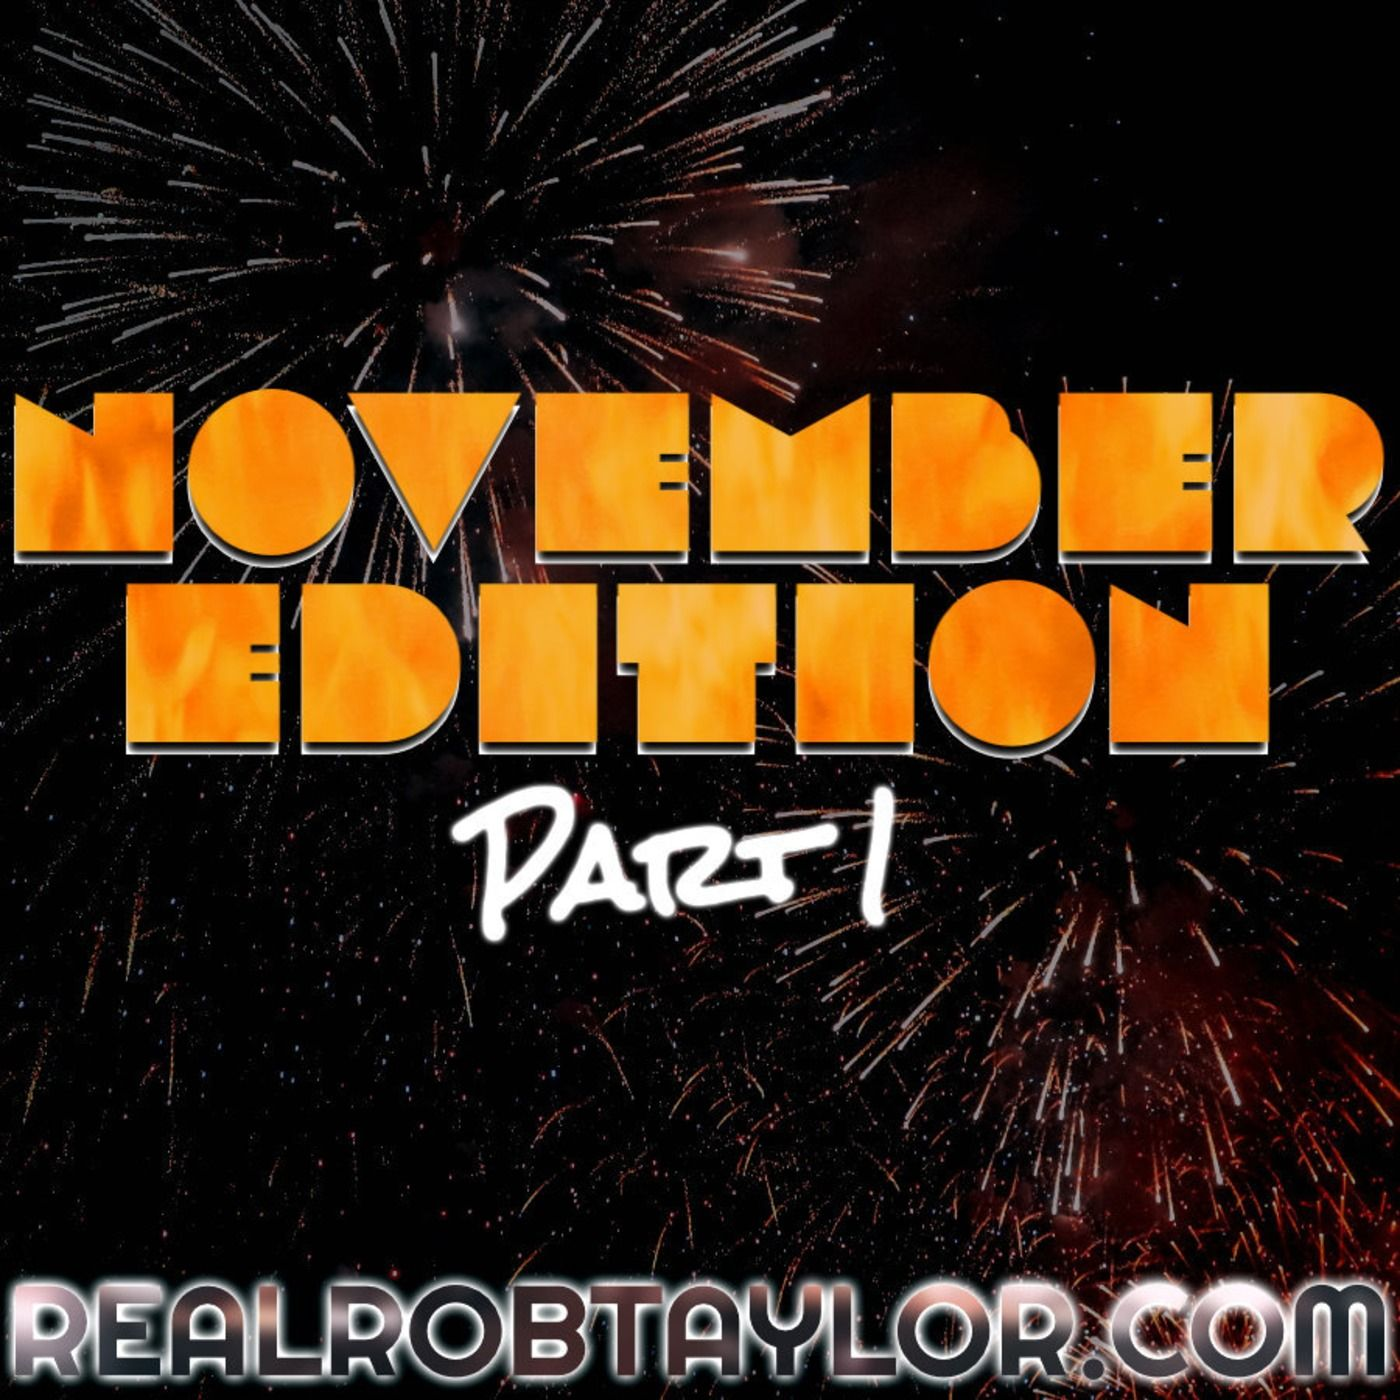 The NOVEMBER EDITION Part 1